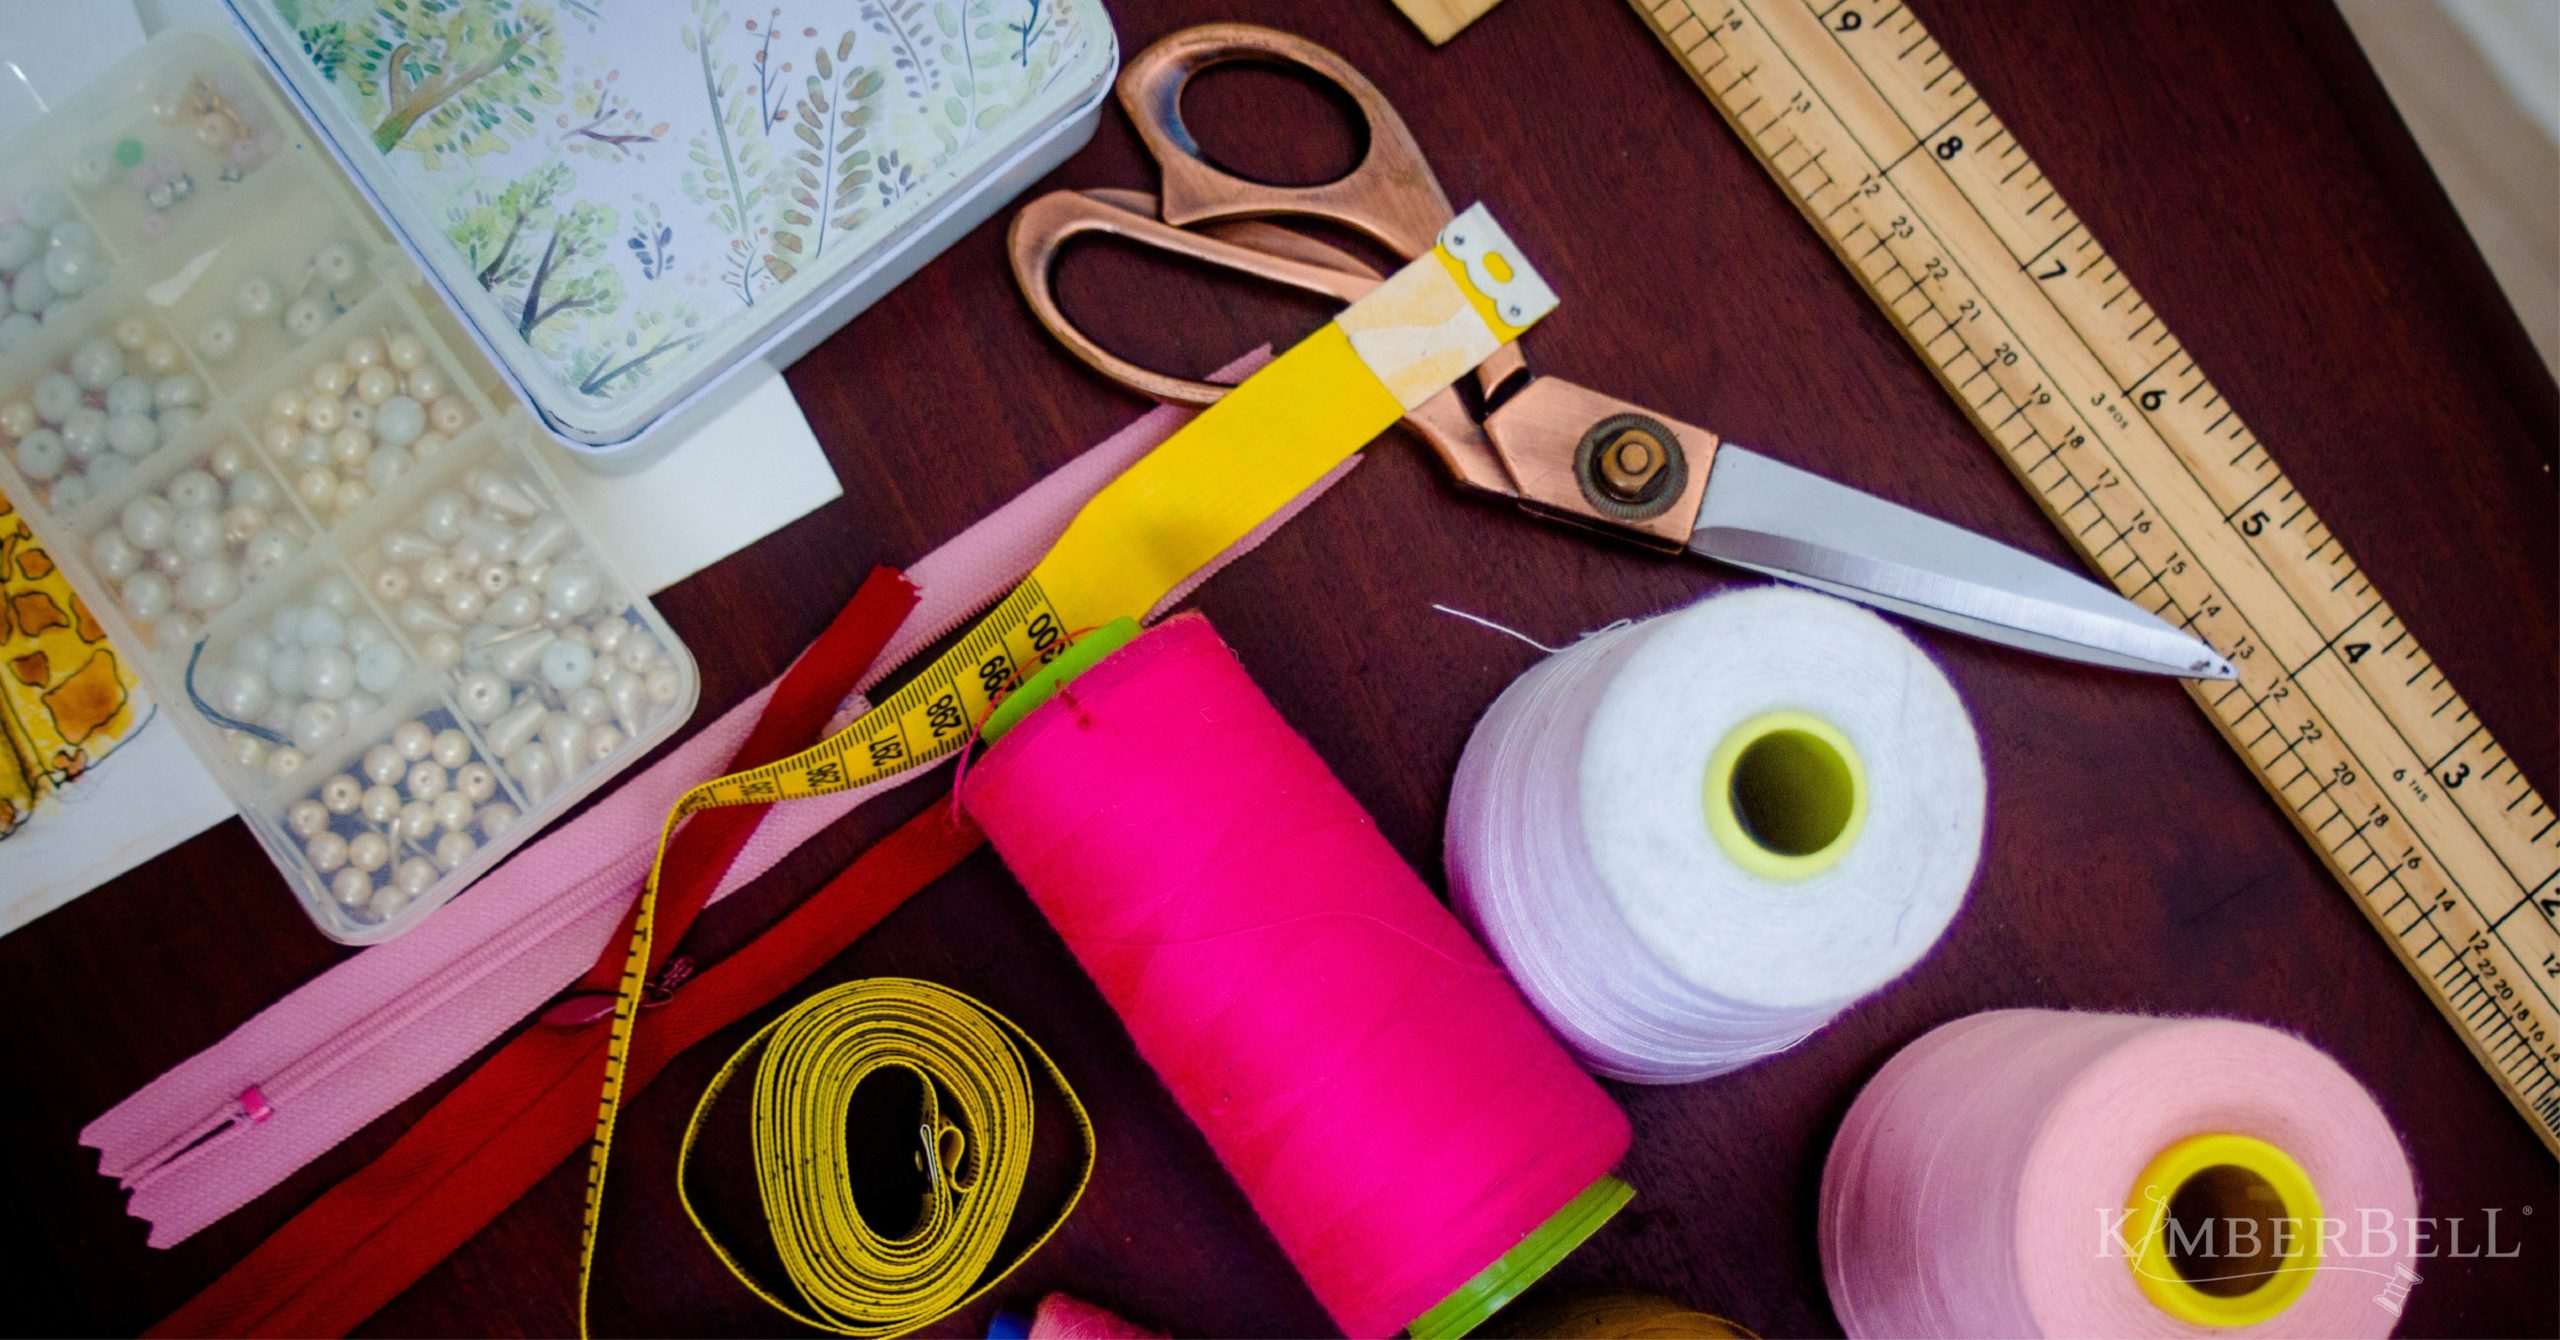 Sewing, crafting, and machine embroidery rooms organized on a budget